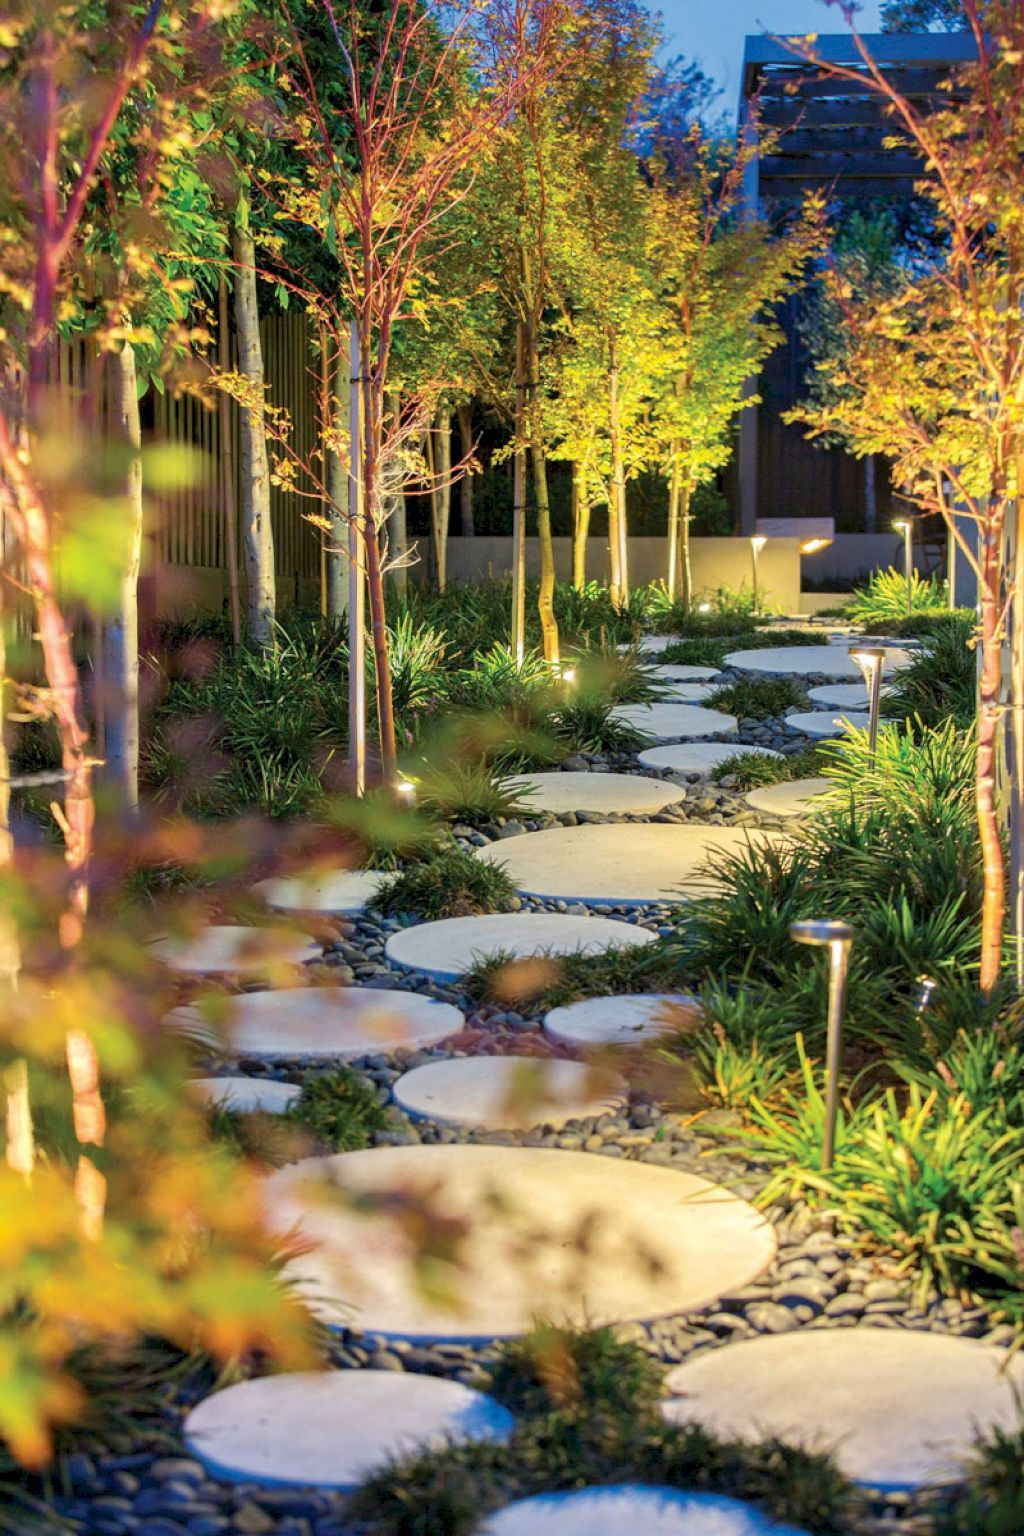 30 Awesome Stepping Stone Pathway Ideas #steppingstonespathway